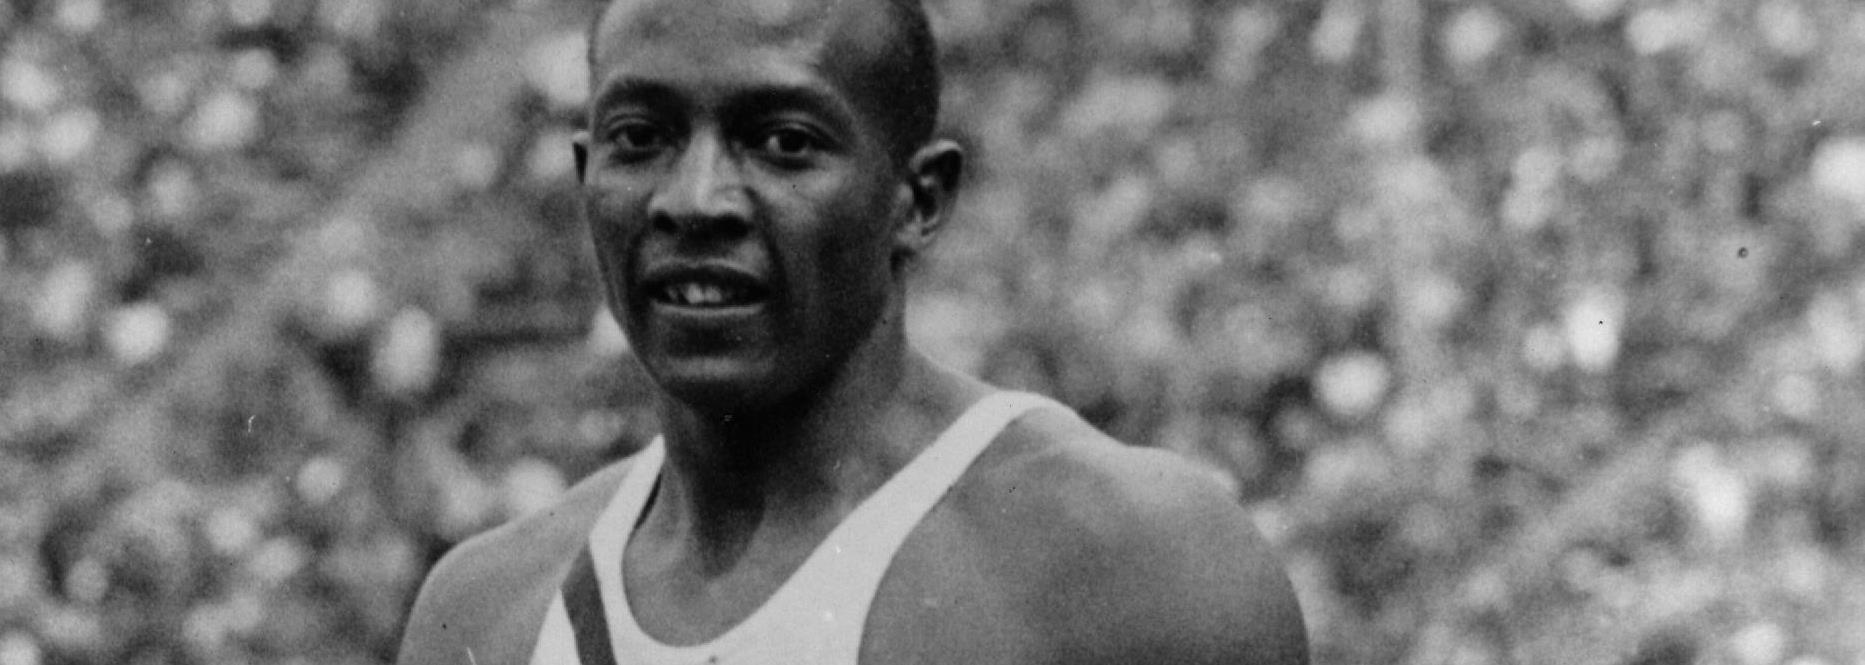 85th anniversary of Jesse Owens' unmatched world record spree